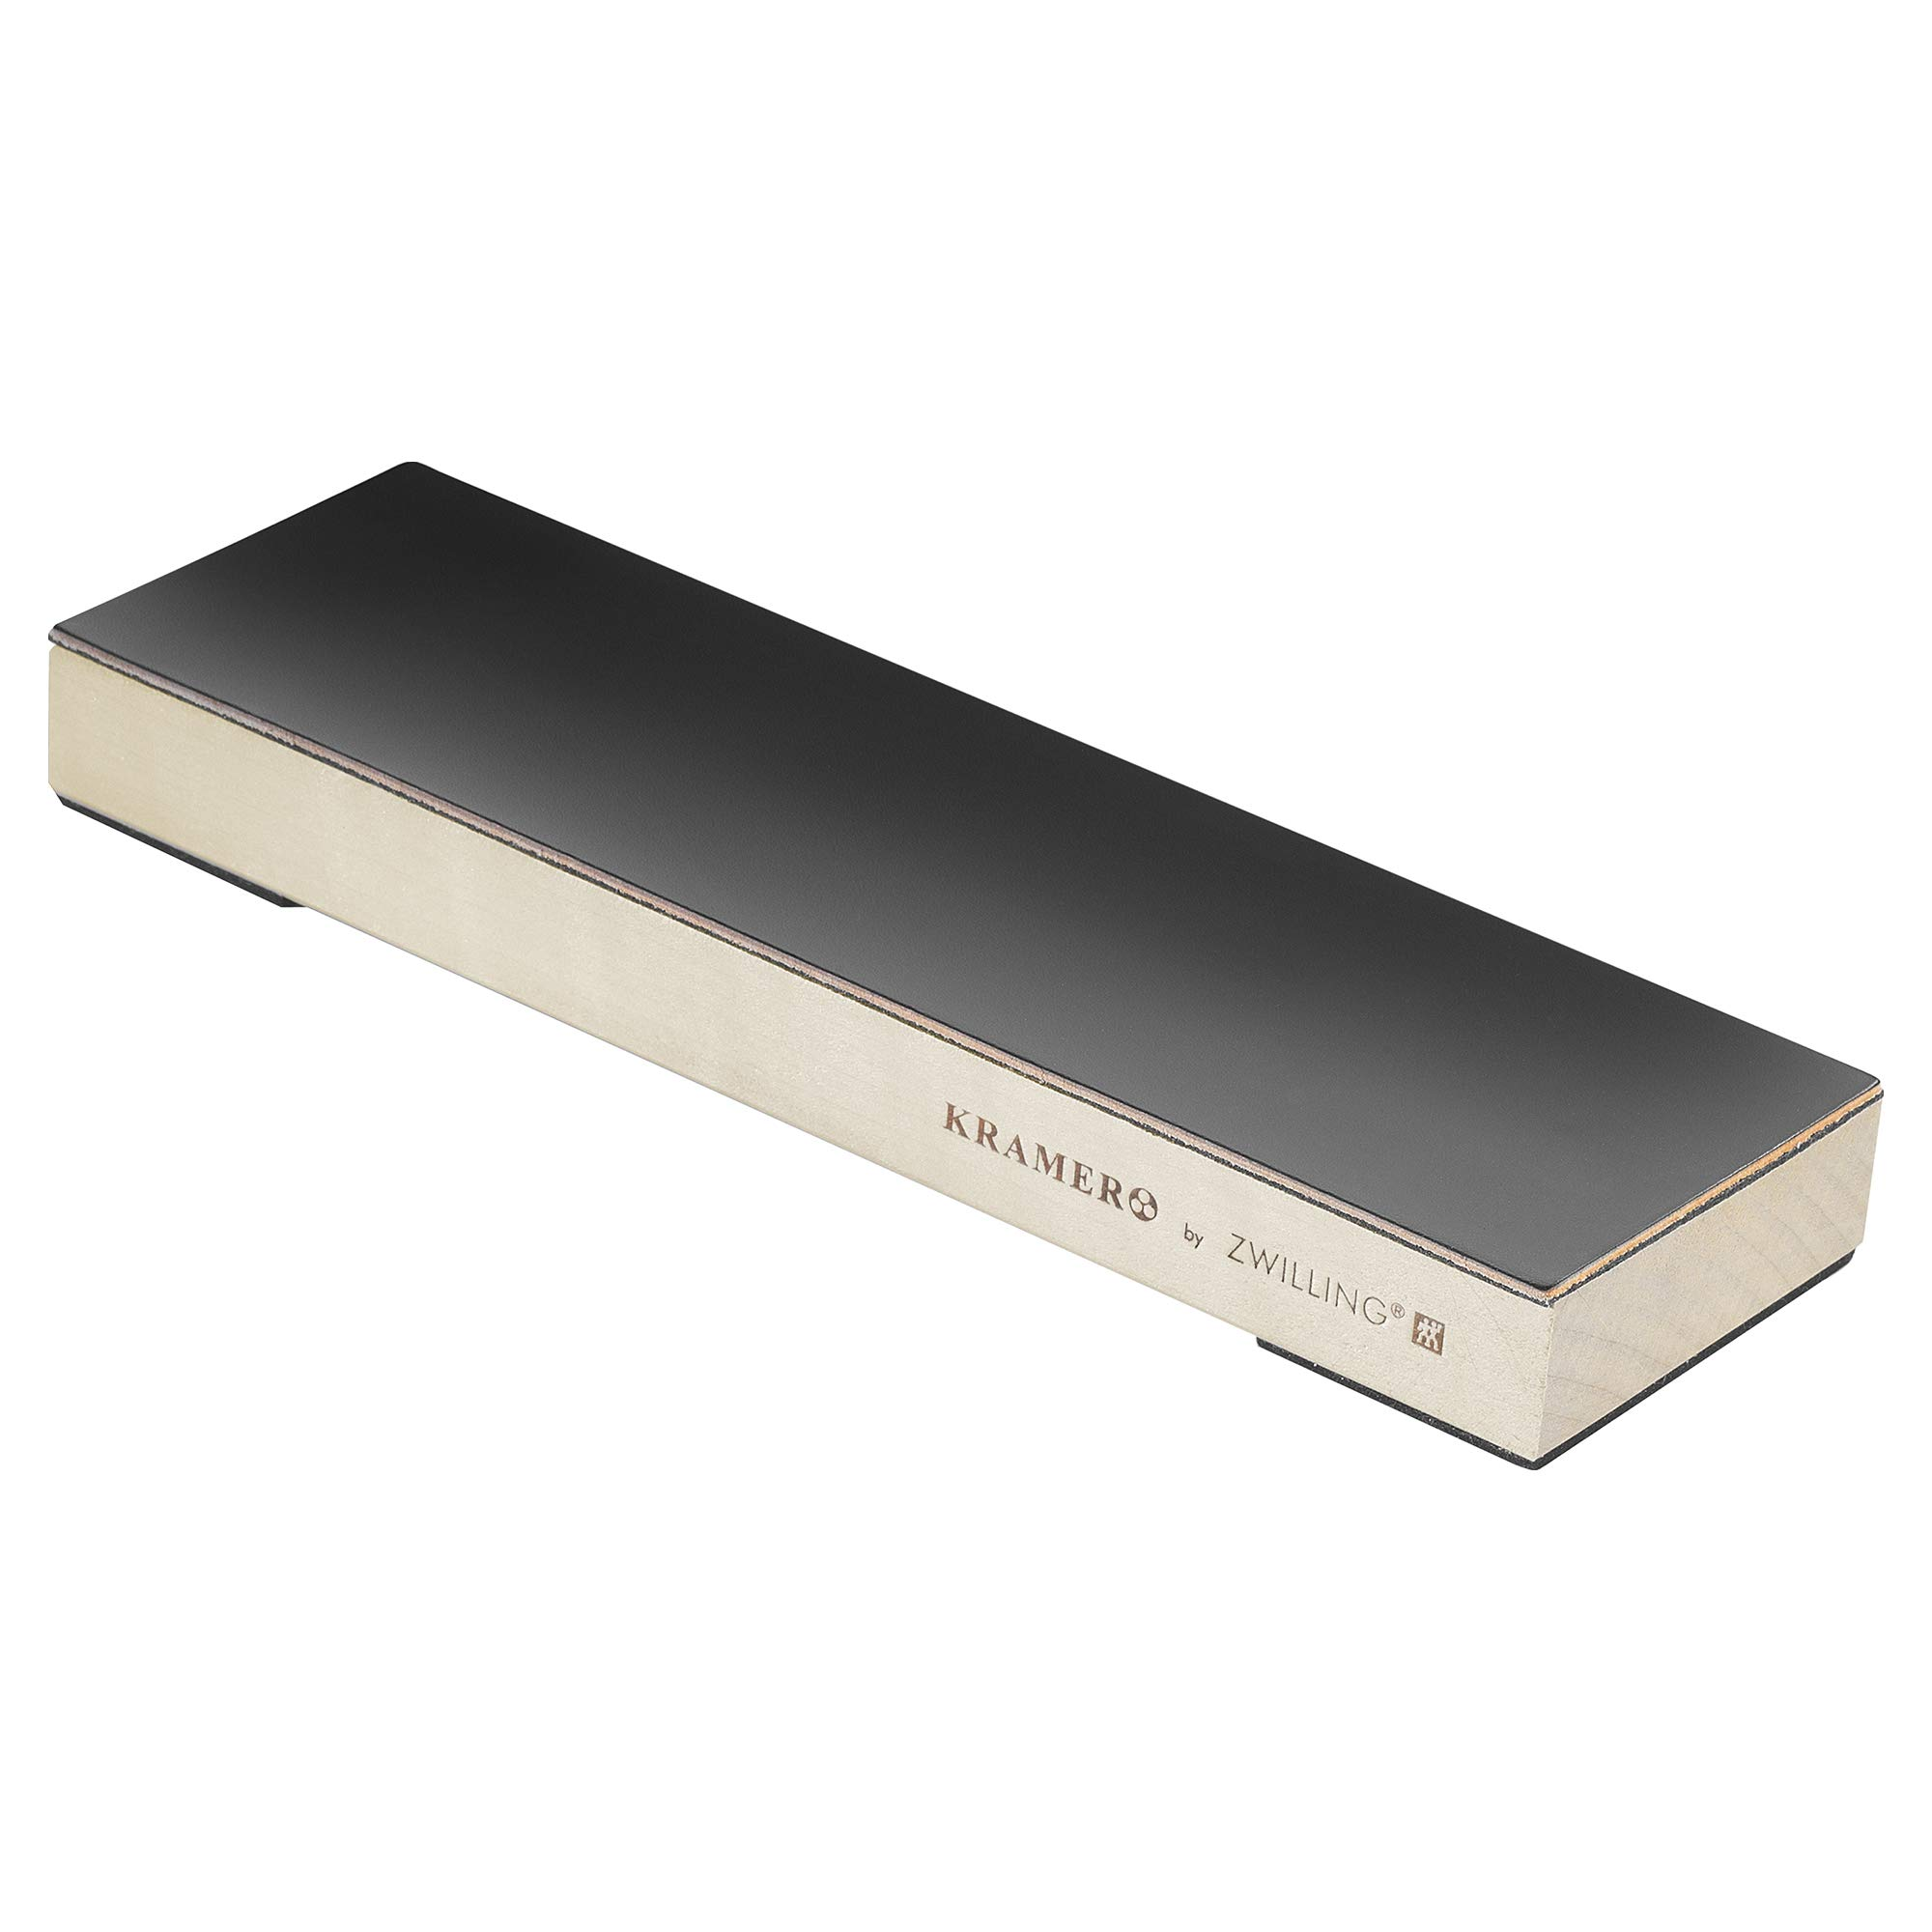 KRAMER by ZWILLING 34999-103 Hardwood Stropping Block with Leather